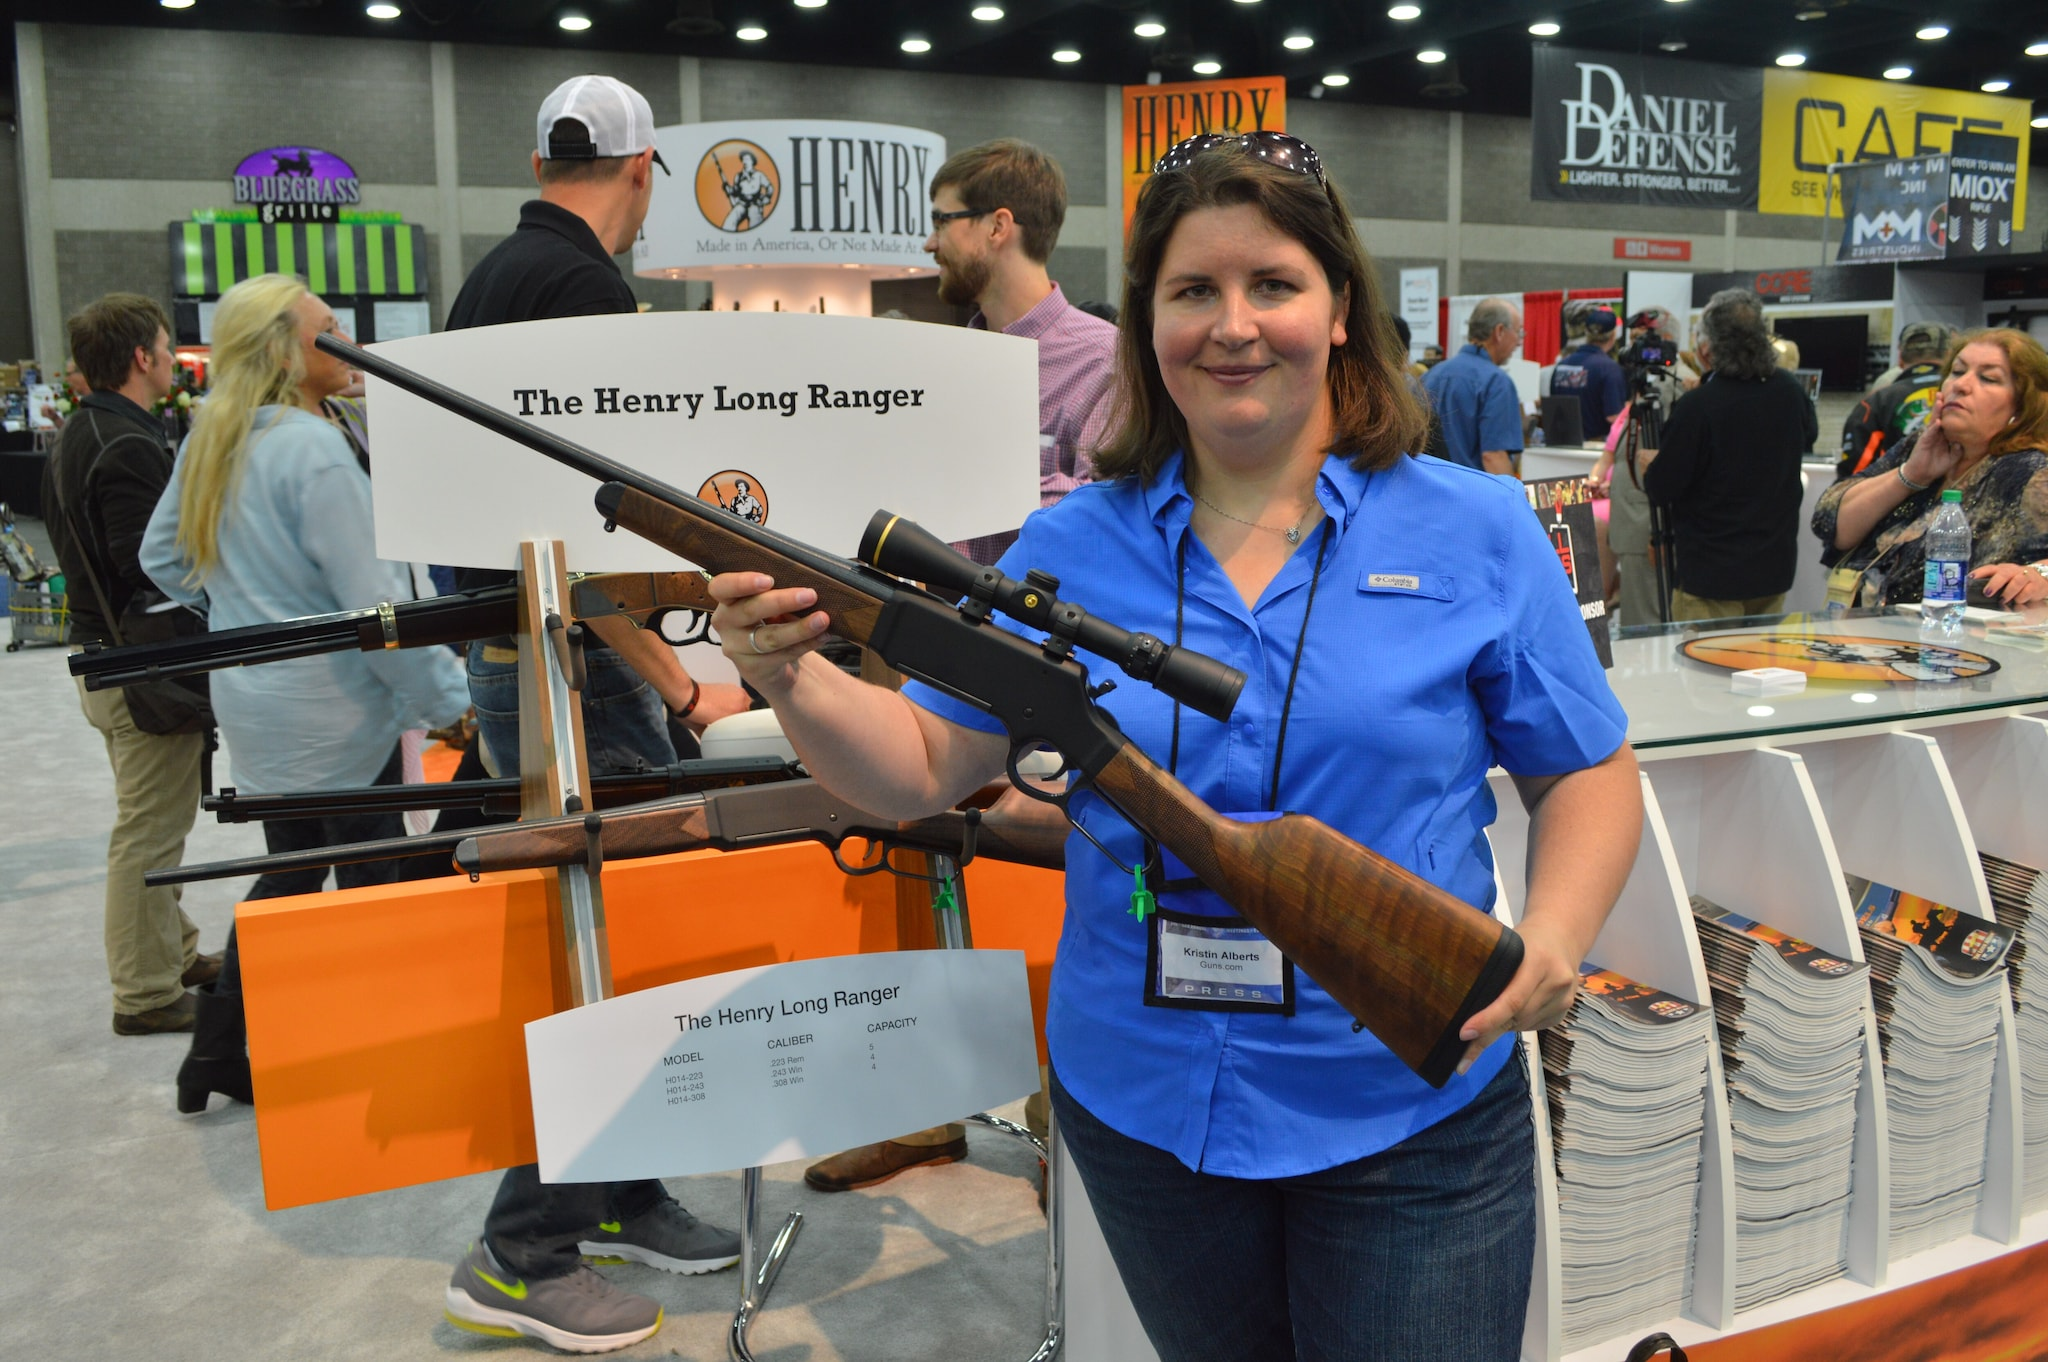 Henry's Long Ranger mates lever gun reliability to long-range accuracy with chamberings in .223, .243, and .308. (Photo: Kristin Alberts/Guns.com)